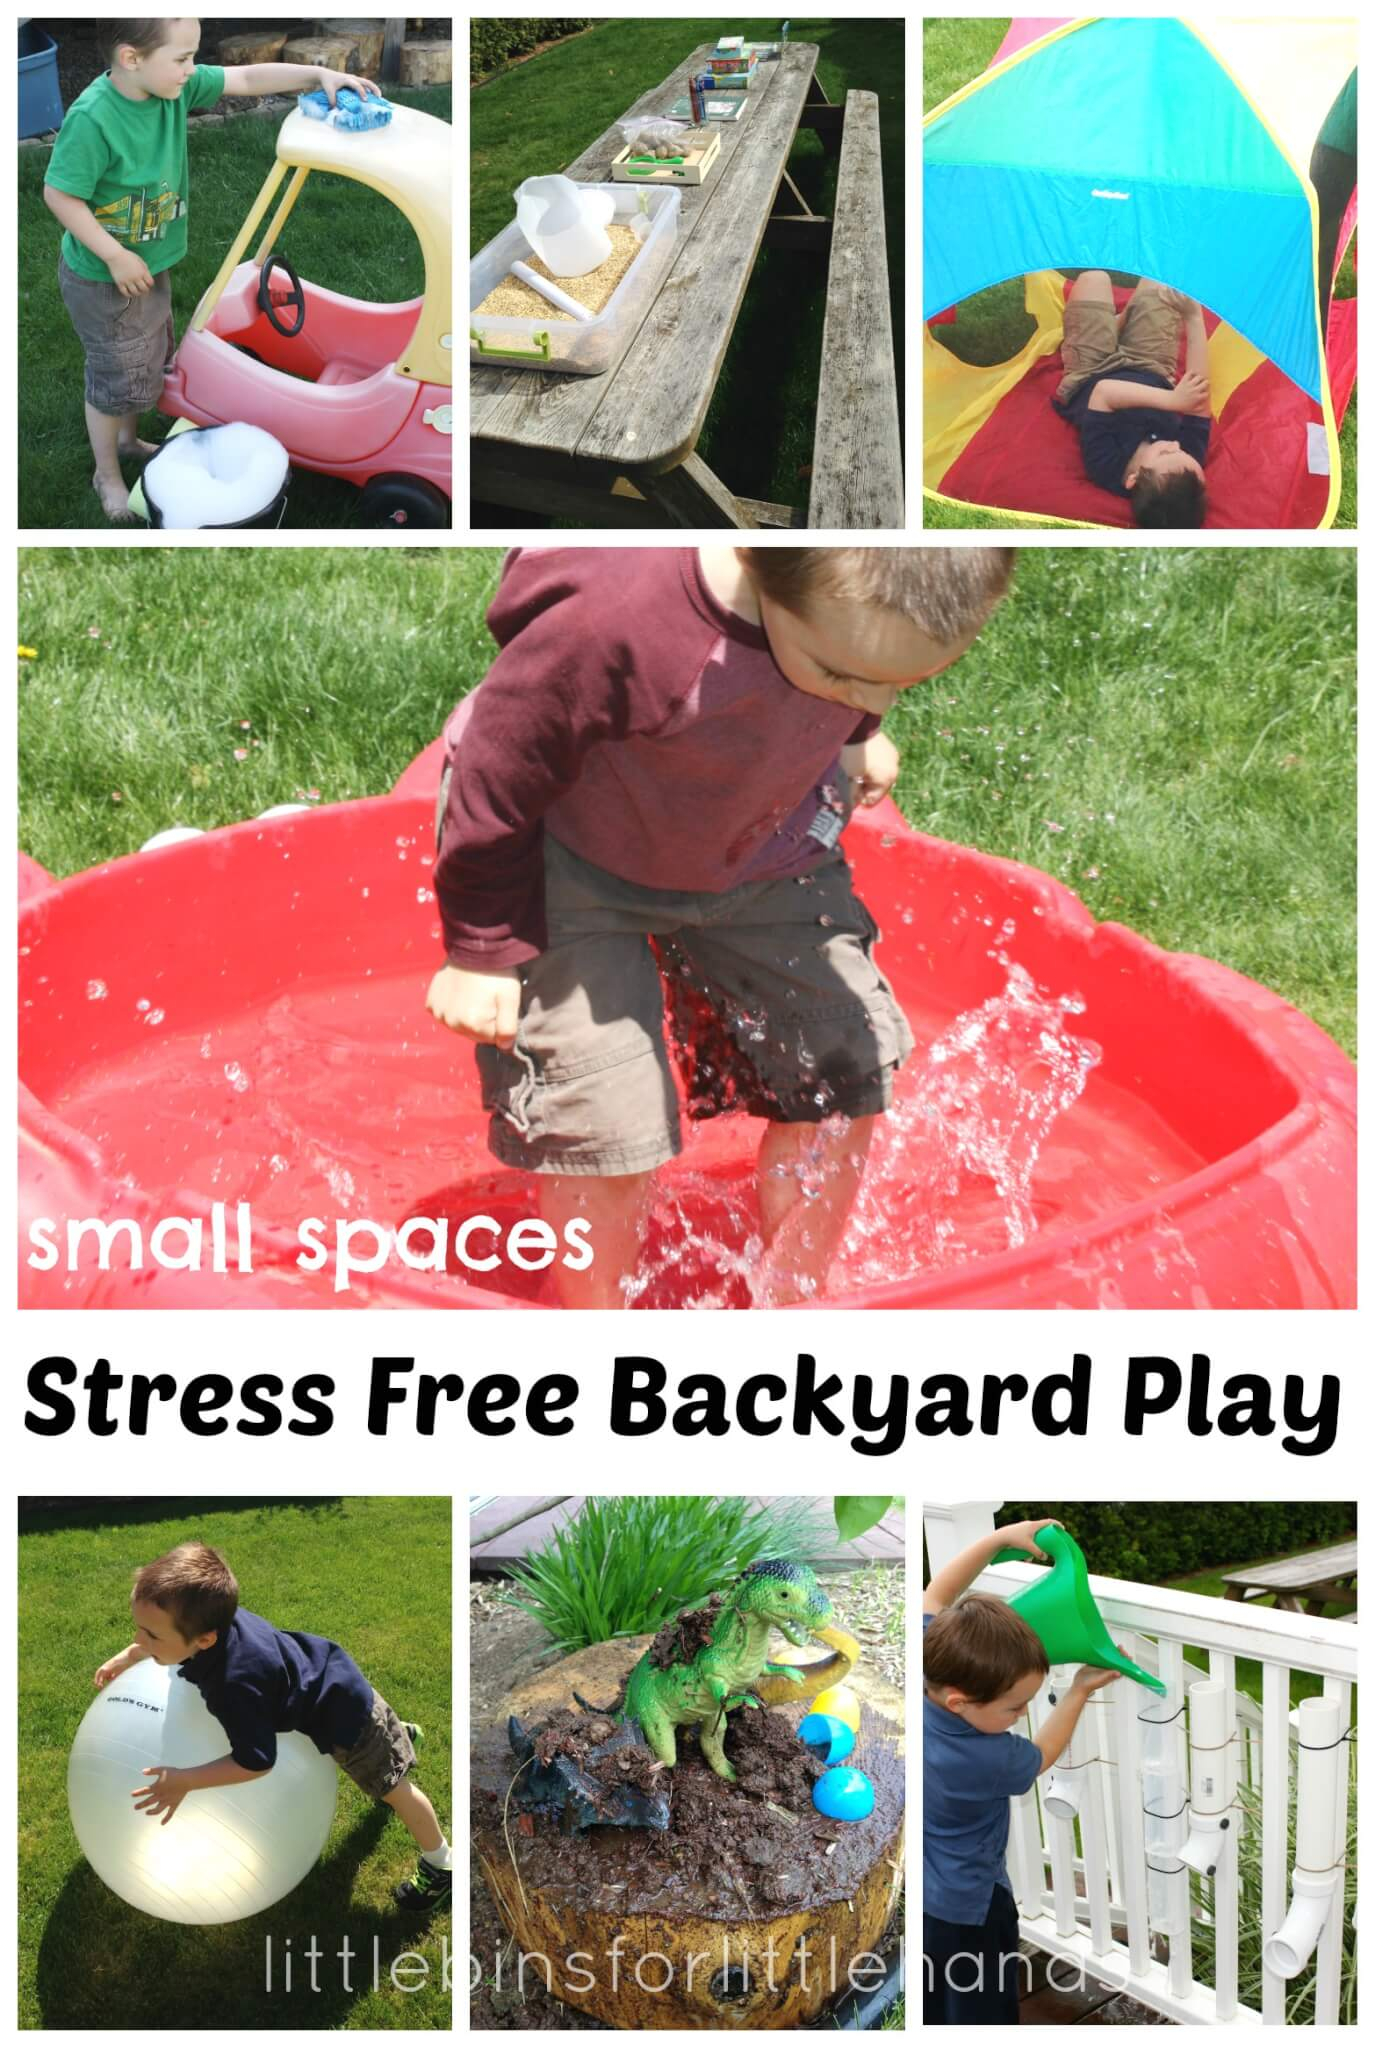 Backyard Play Ideas Stress Free Summer Play Outdoors in 11 Smart Ideas How to Build Backyard Ideas For Summer